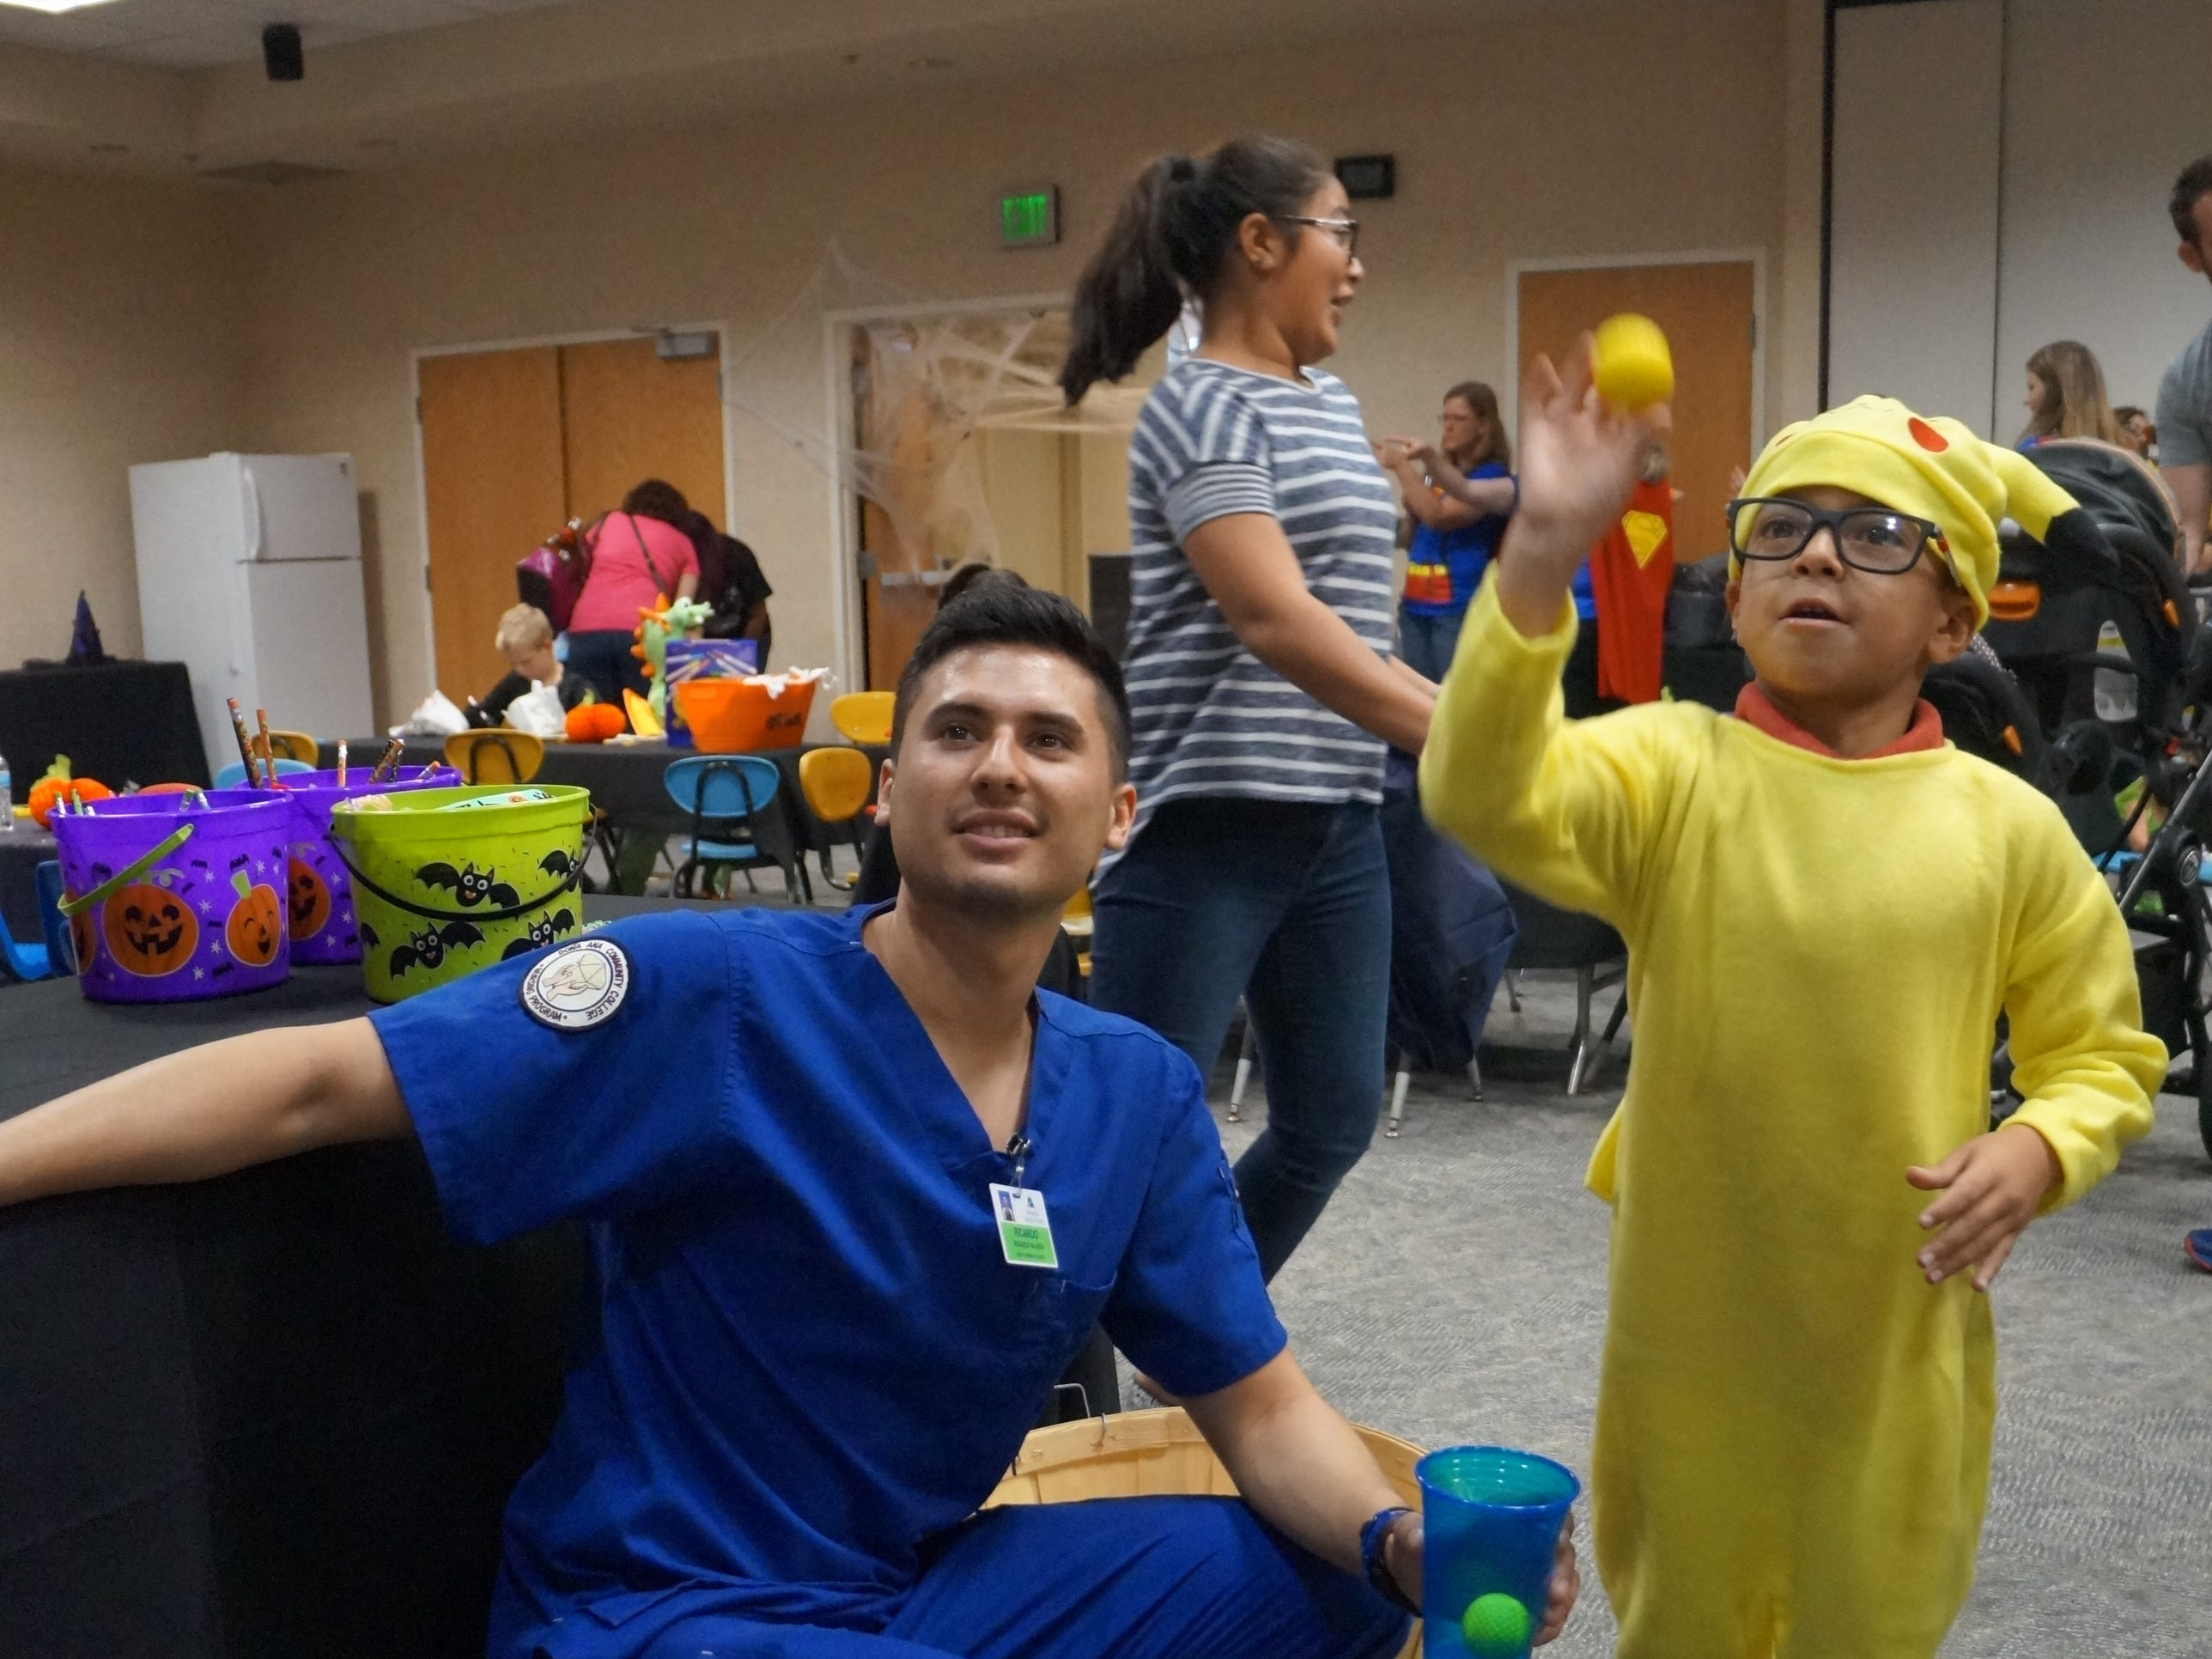 Johnny Ramos (as Pikachu) and a Doña Ana Community College nursing student play during the NICU Reunion Carnival at Memorial Medical Center. The hospital was host to a reunion of children who had been helped by the hospital's neonatal intensive care unit. Children came dressed in costume for the second NICU Reunion Carnival, held Tuesday, Oct. 30. The children, parents and hospital staff enjoyed food and games for the afternoon.